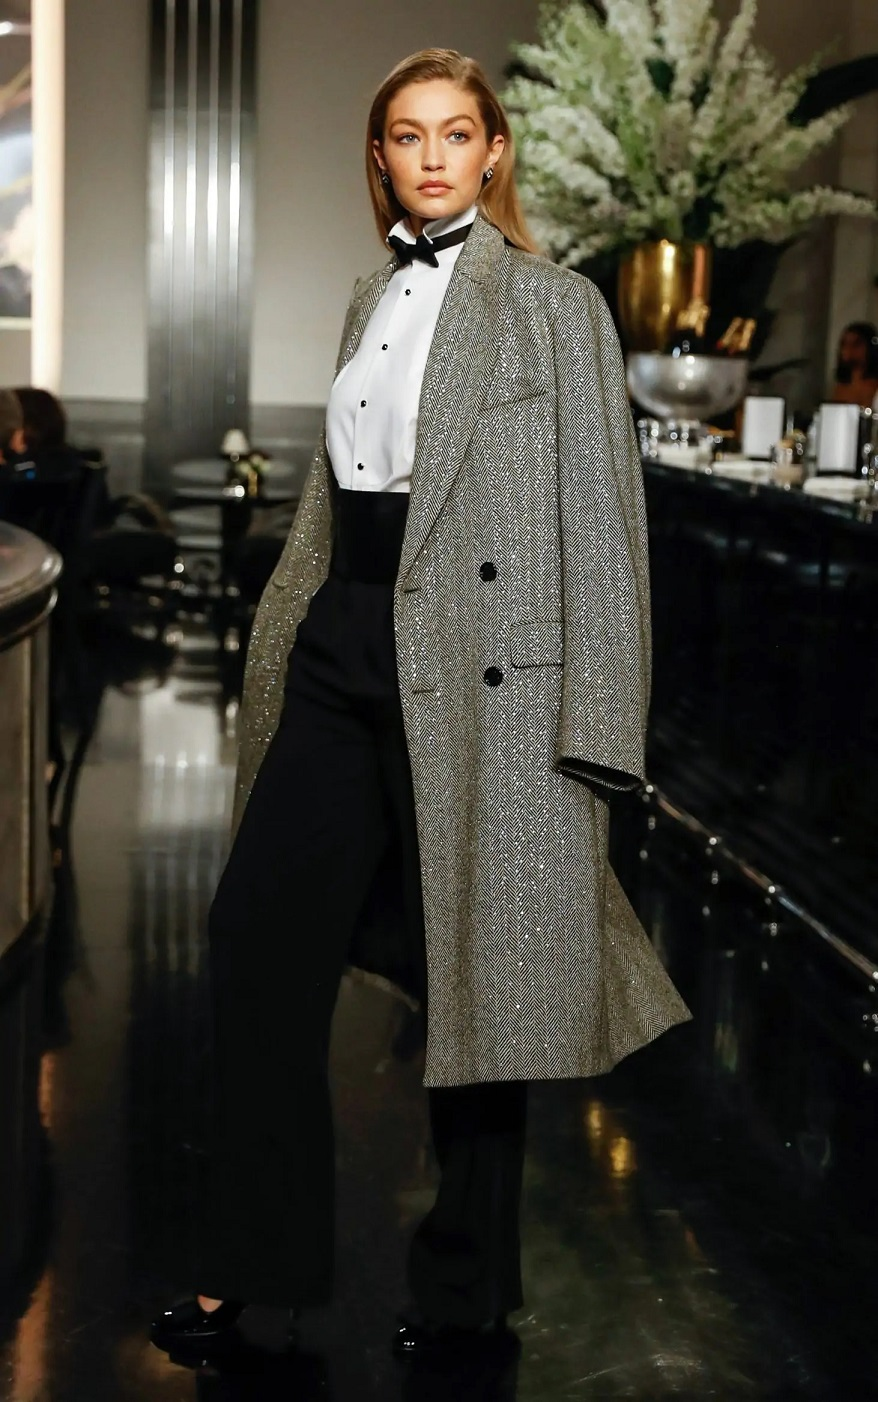 Gigi Hadid walks the runway at the Ralph Lauren Fall 2019 Collection